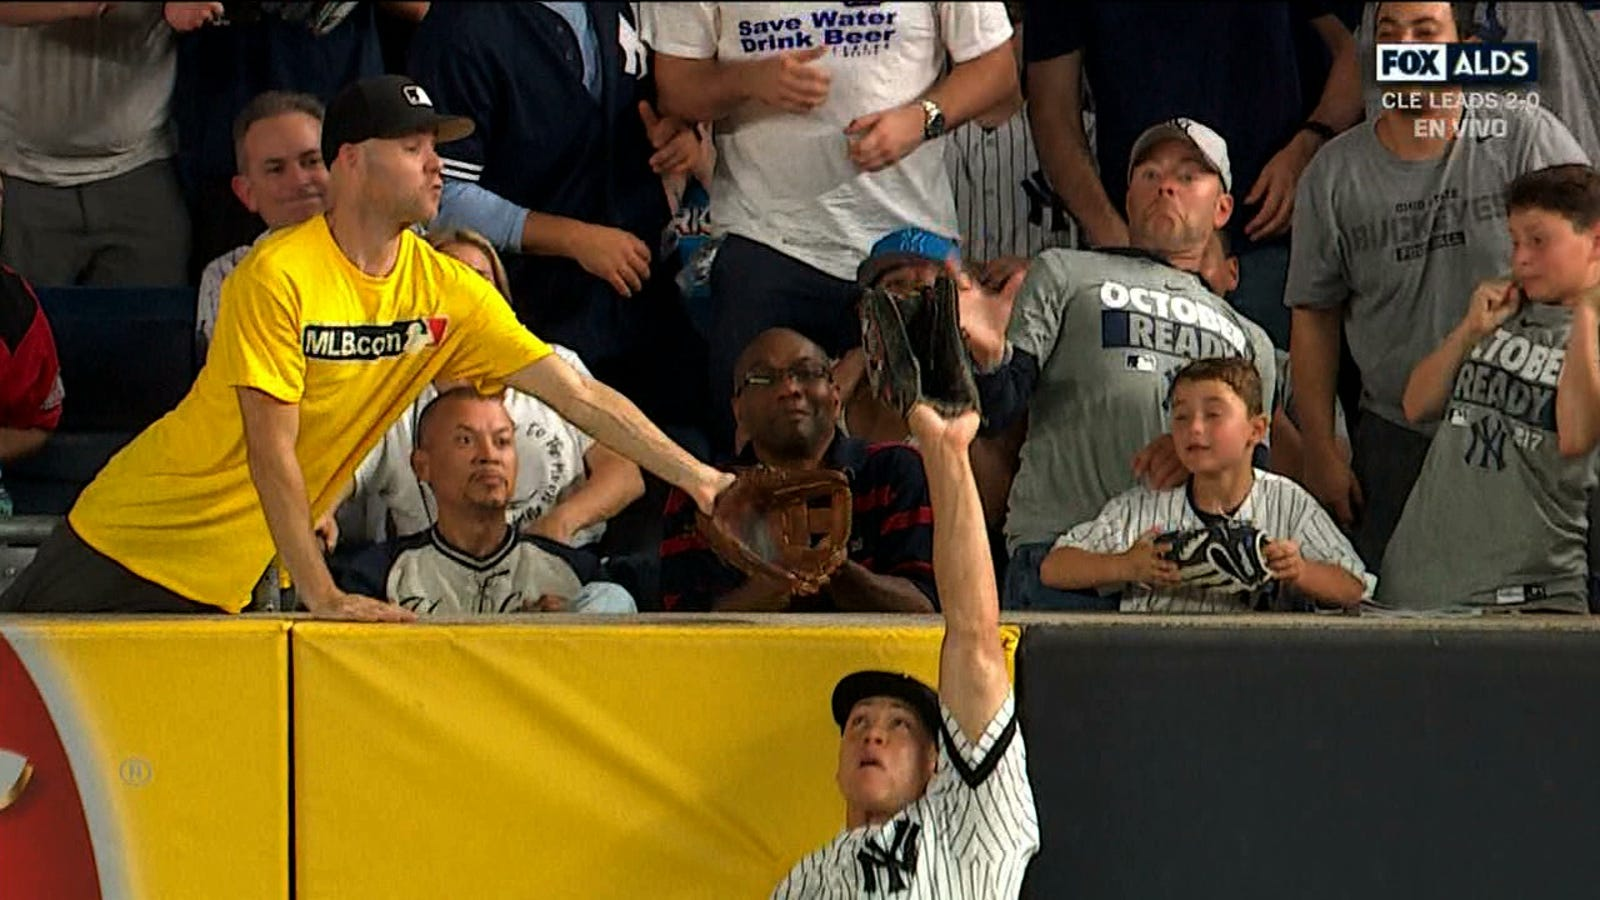 Aaron Judge Robs Home Run, Denies Zack Hample Baseball, Is Officially World's Greatest Athlete